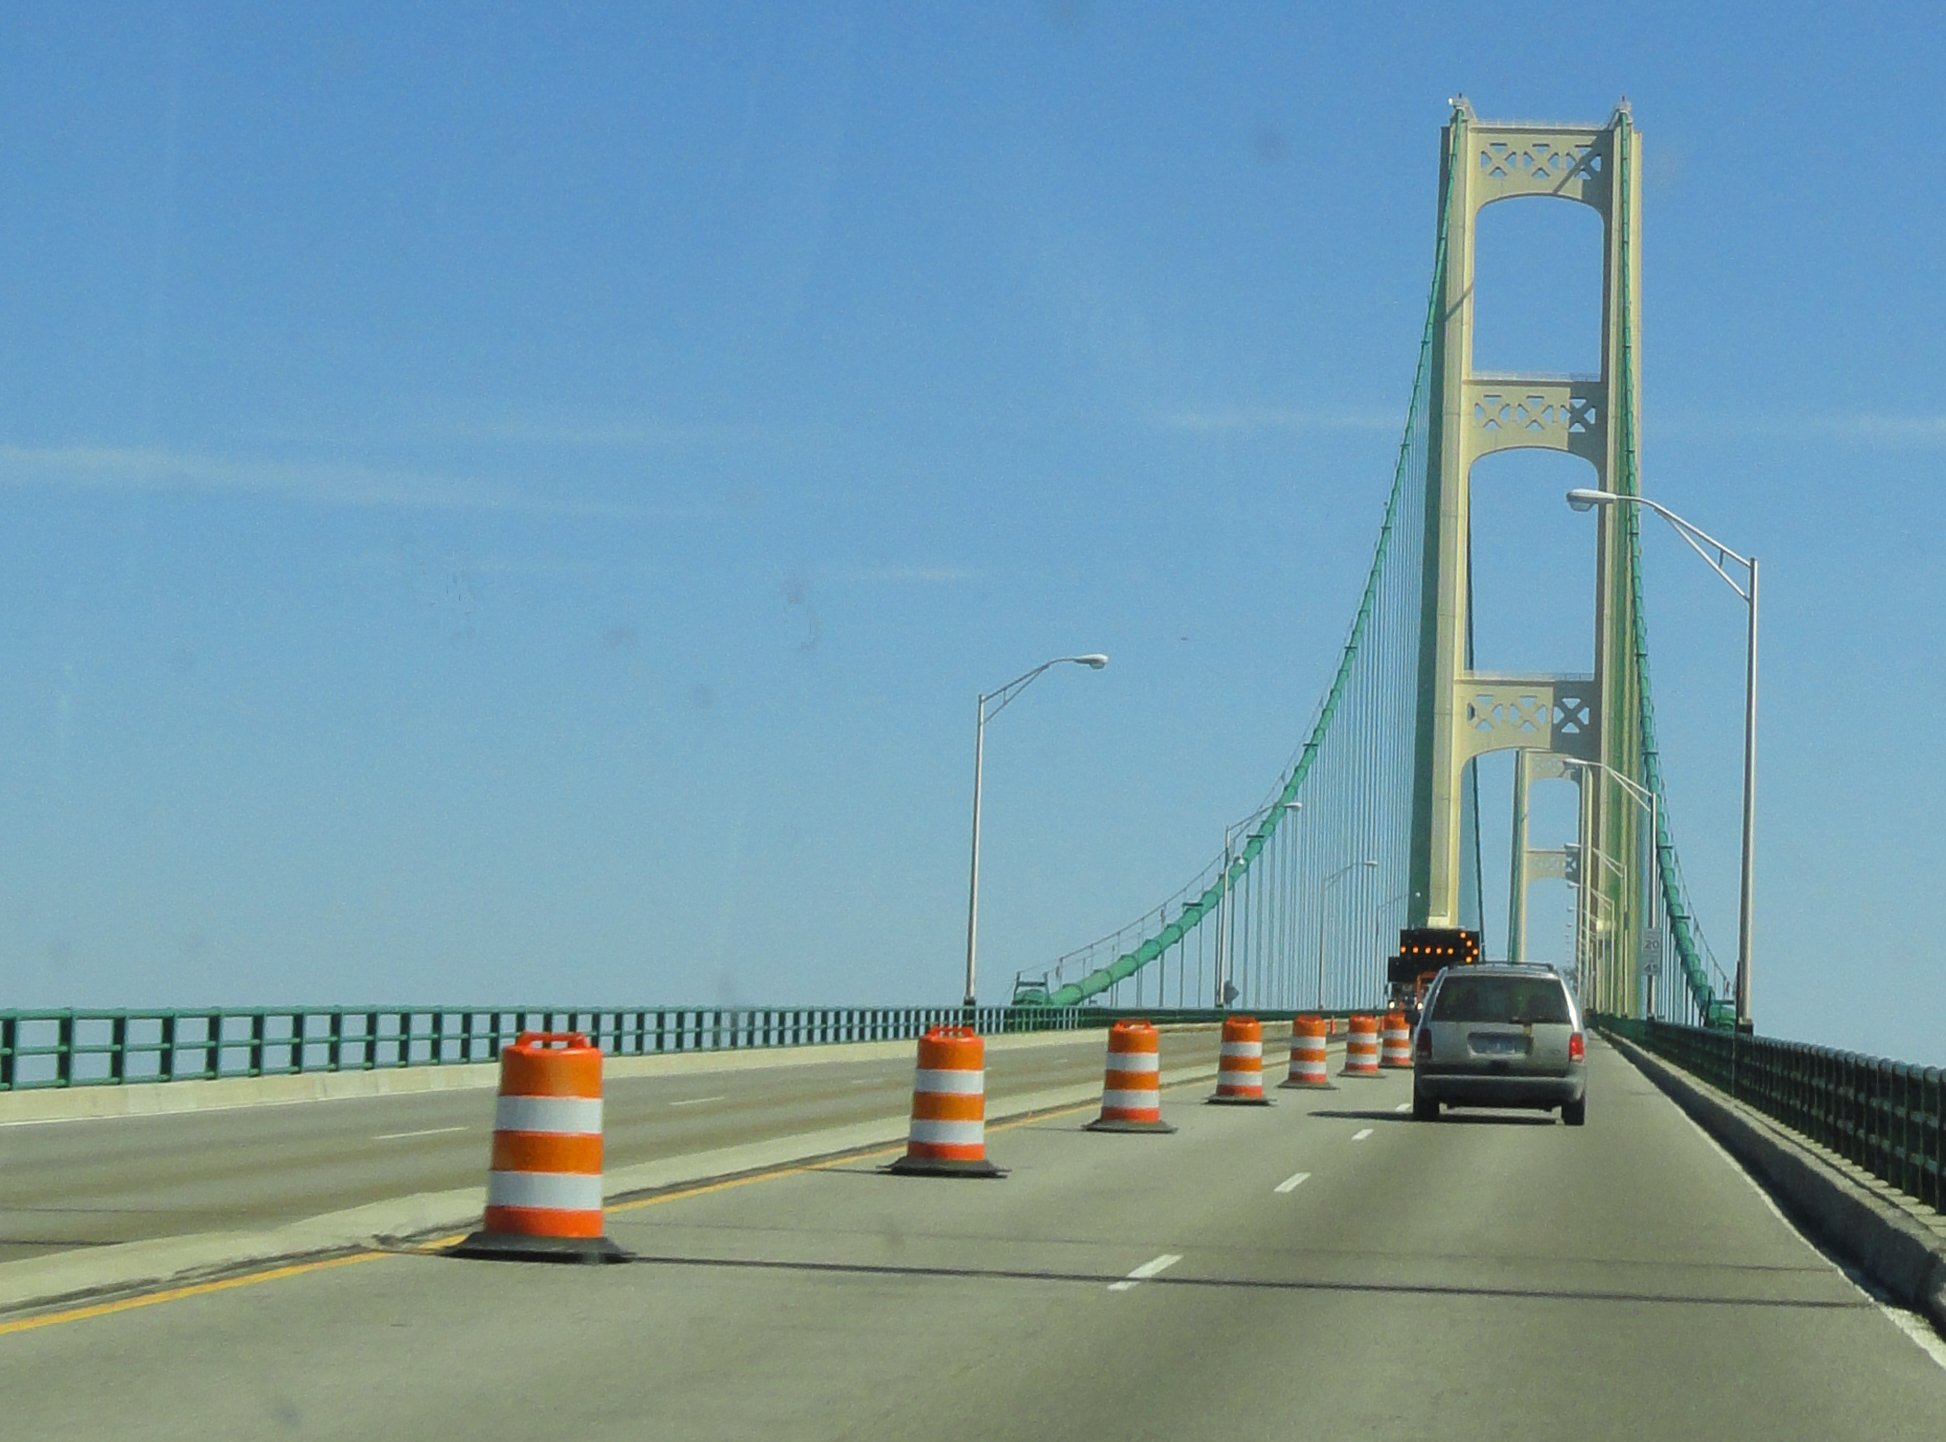 Going onto the Mackinac Bridge